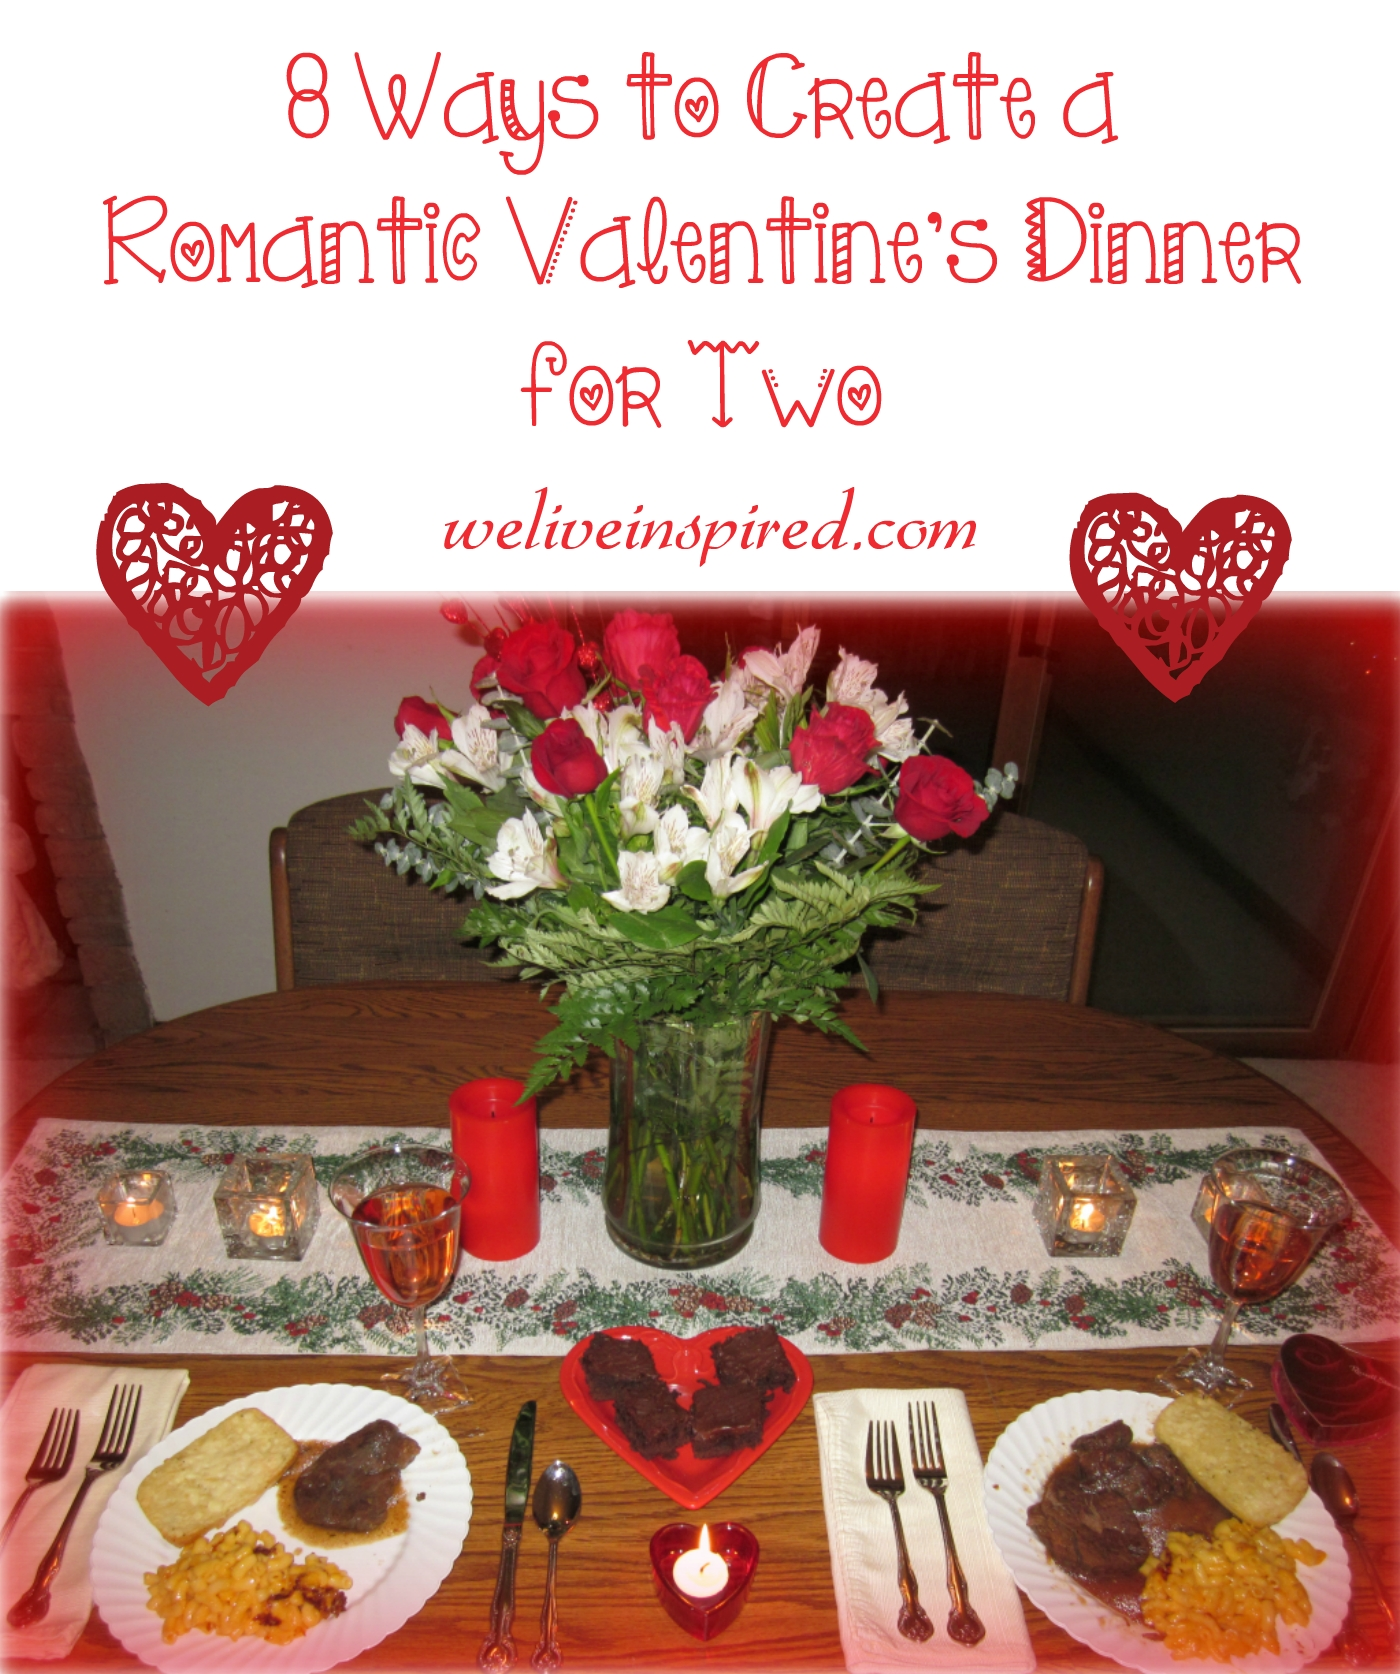 10 Wonderful Romantic Dinner For Two Ideas 8 ways to create a romantic valentines day dinner for two we live 1